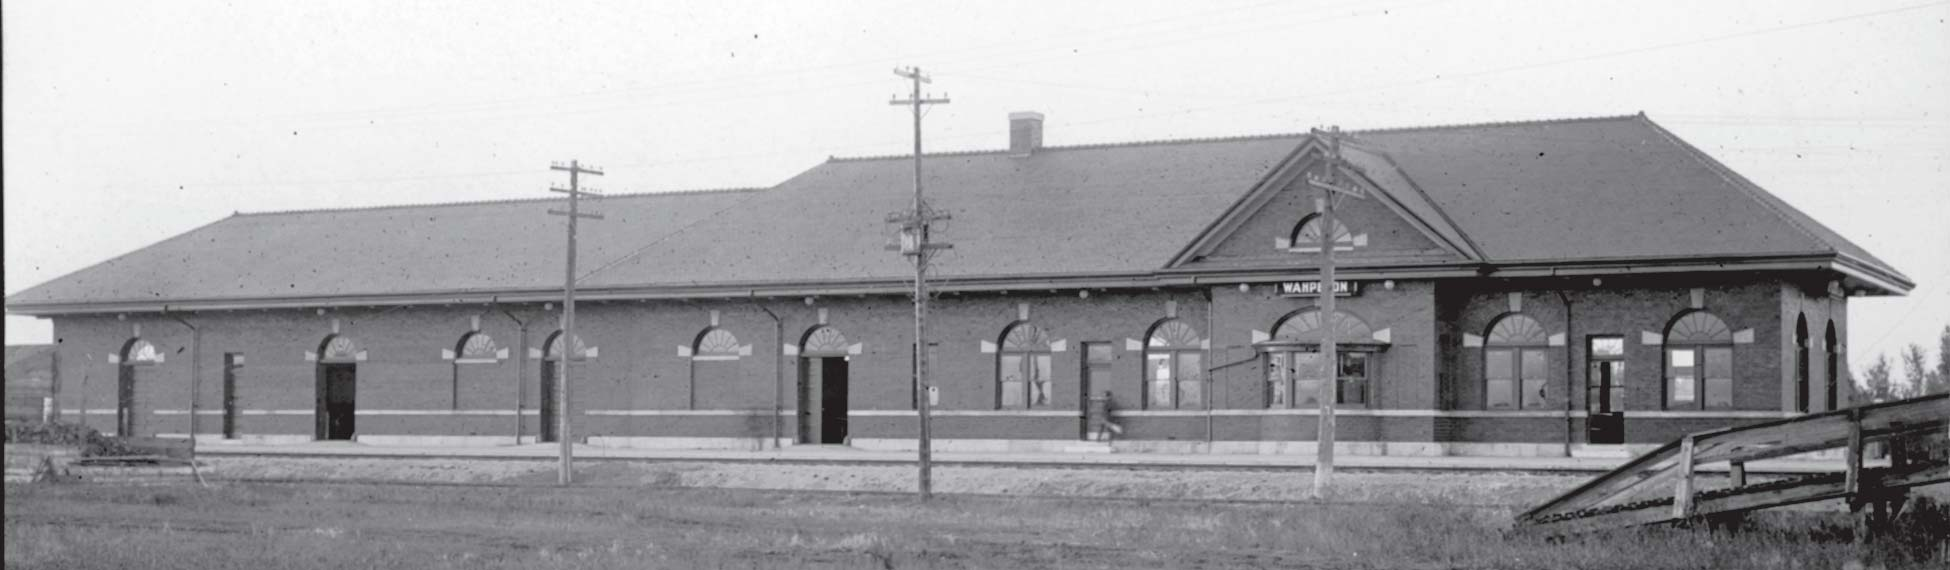 Great Northern Railway Depot